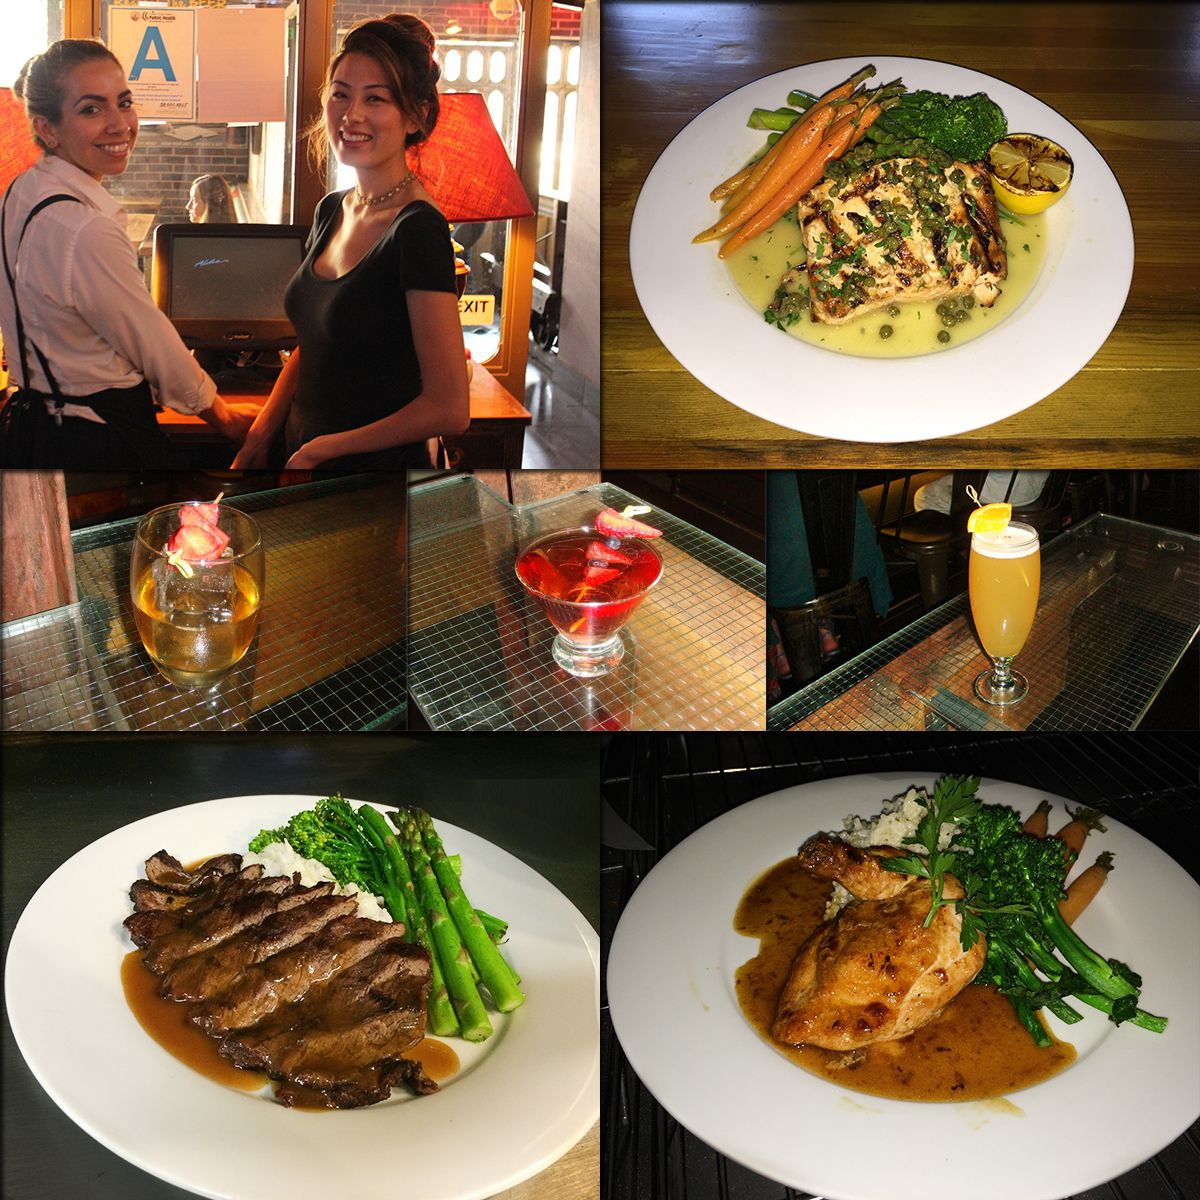 Perfect for any celebratory event! #5LineTavern's friendly staff will provide the exceptional service you deserve! For Reservations Call - (323) 238-3838 www.5linetavern.com/reservations